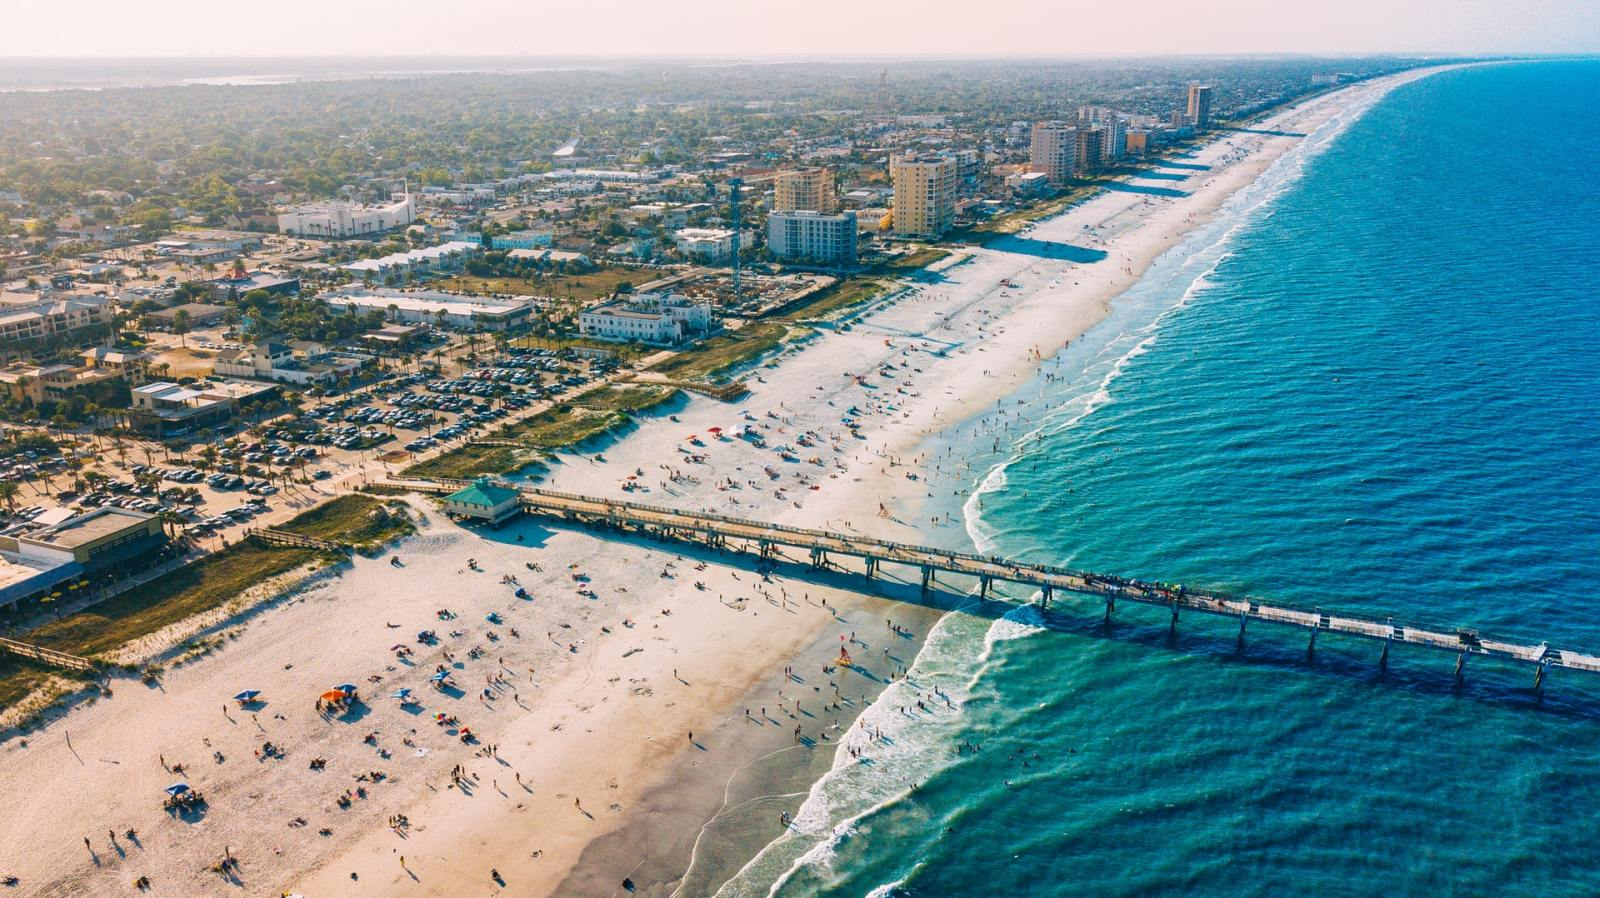 The Best Areas to Stay in Jacksonville, Florida